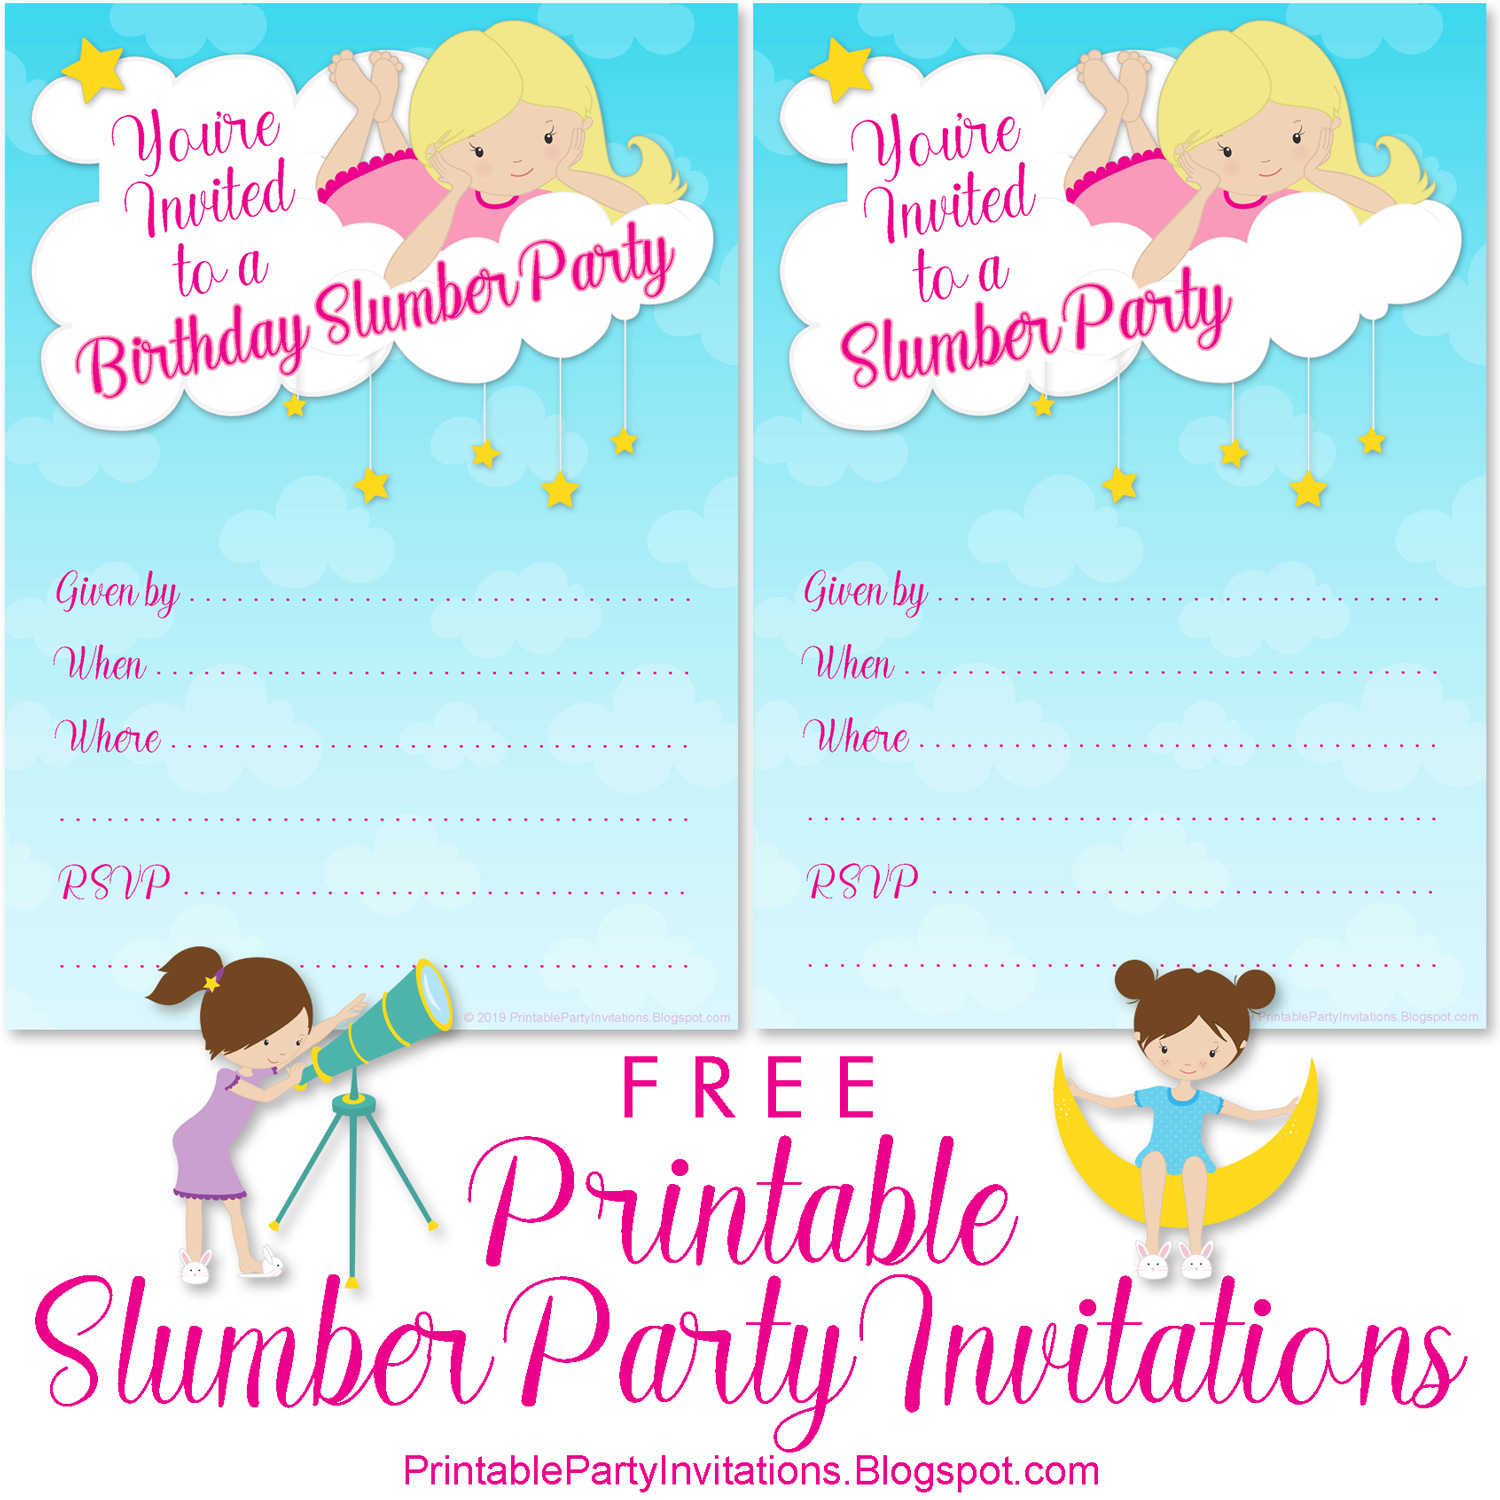 Free Printable Party Invitations Slumber Party Invitations